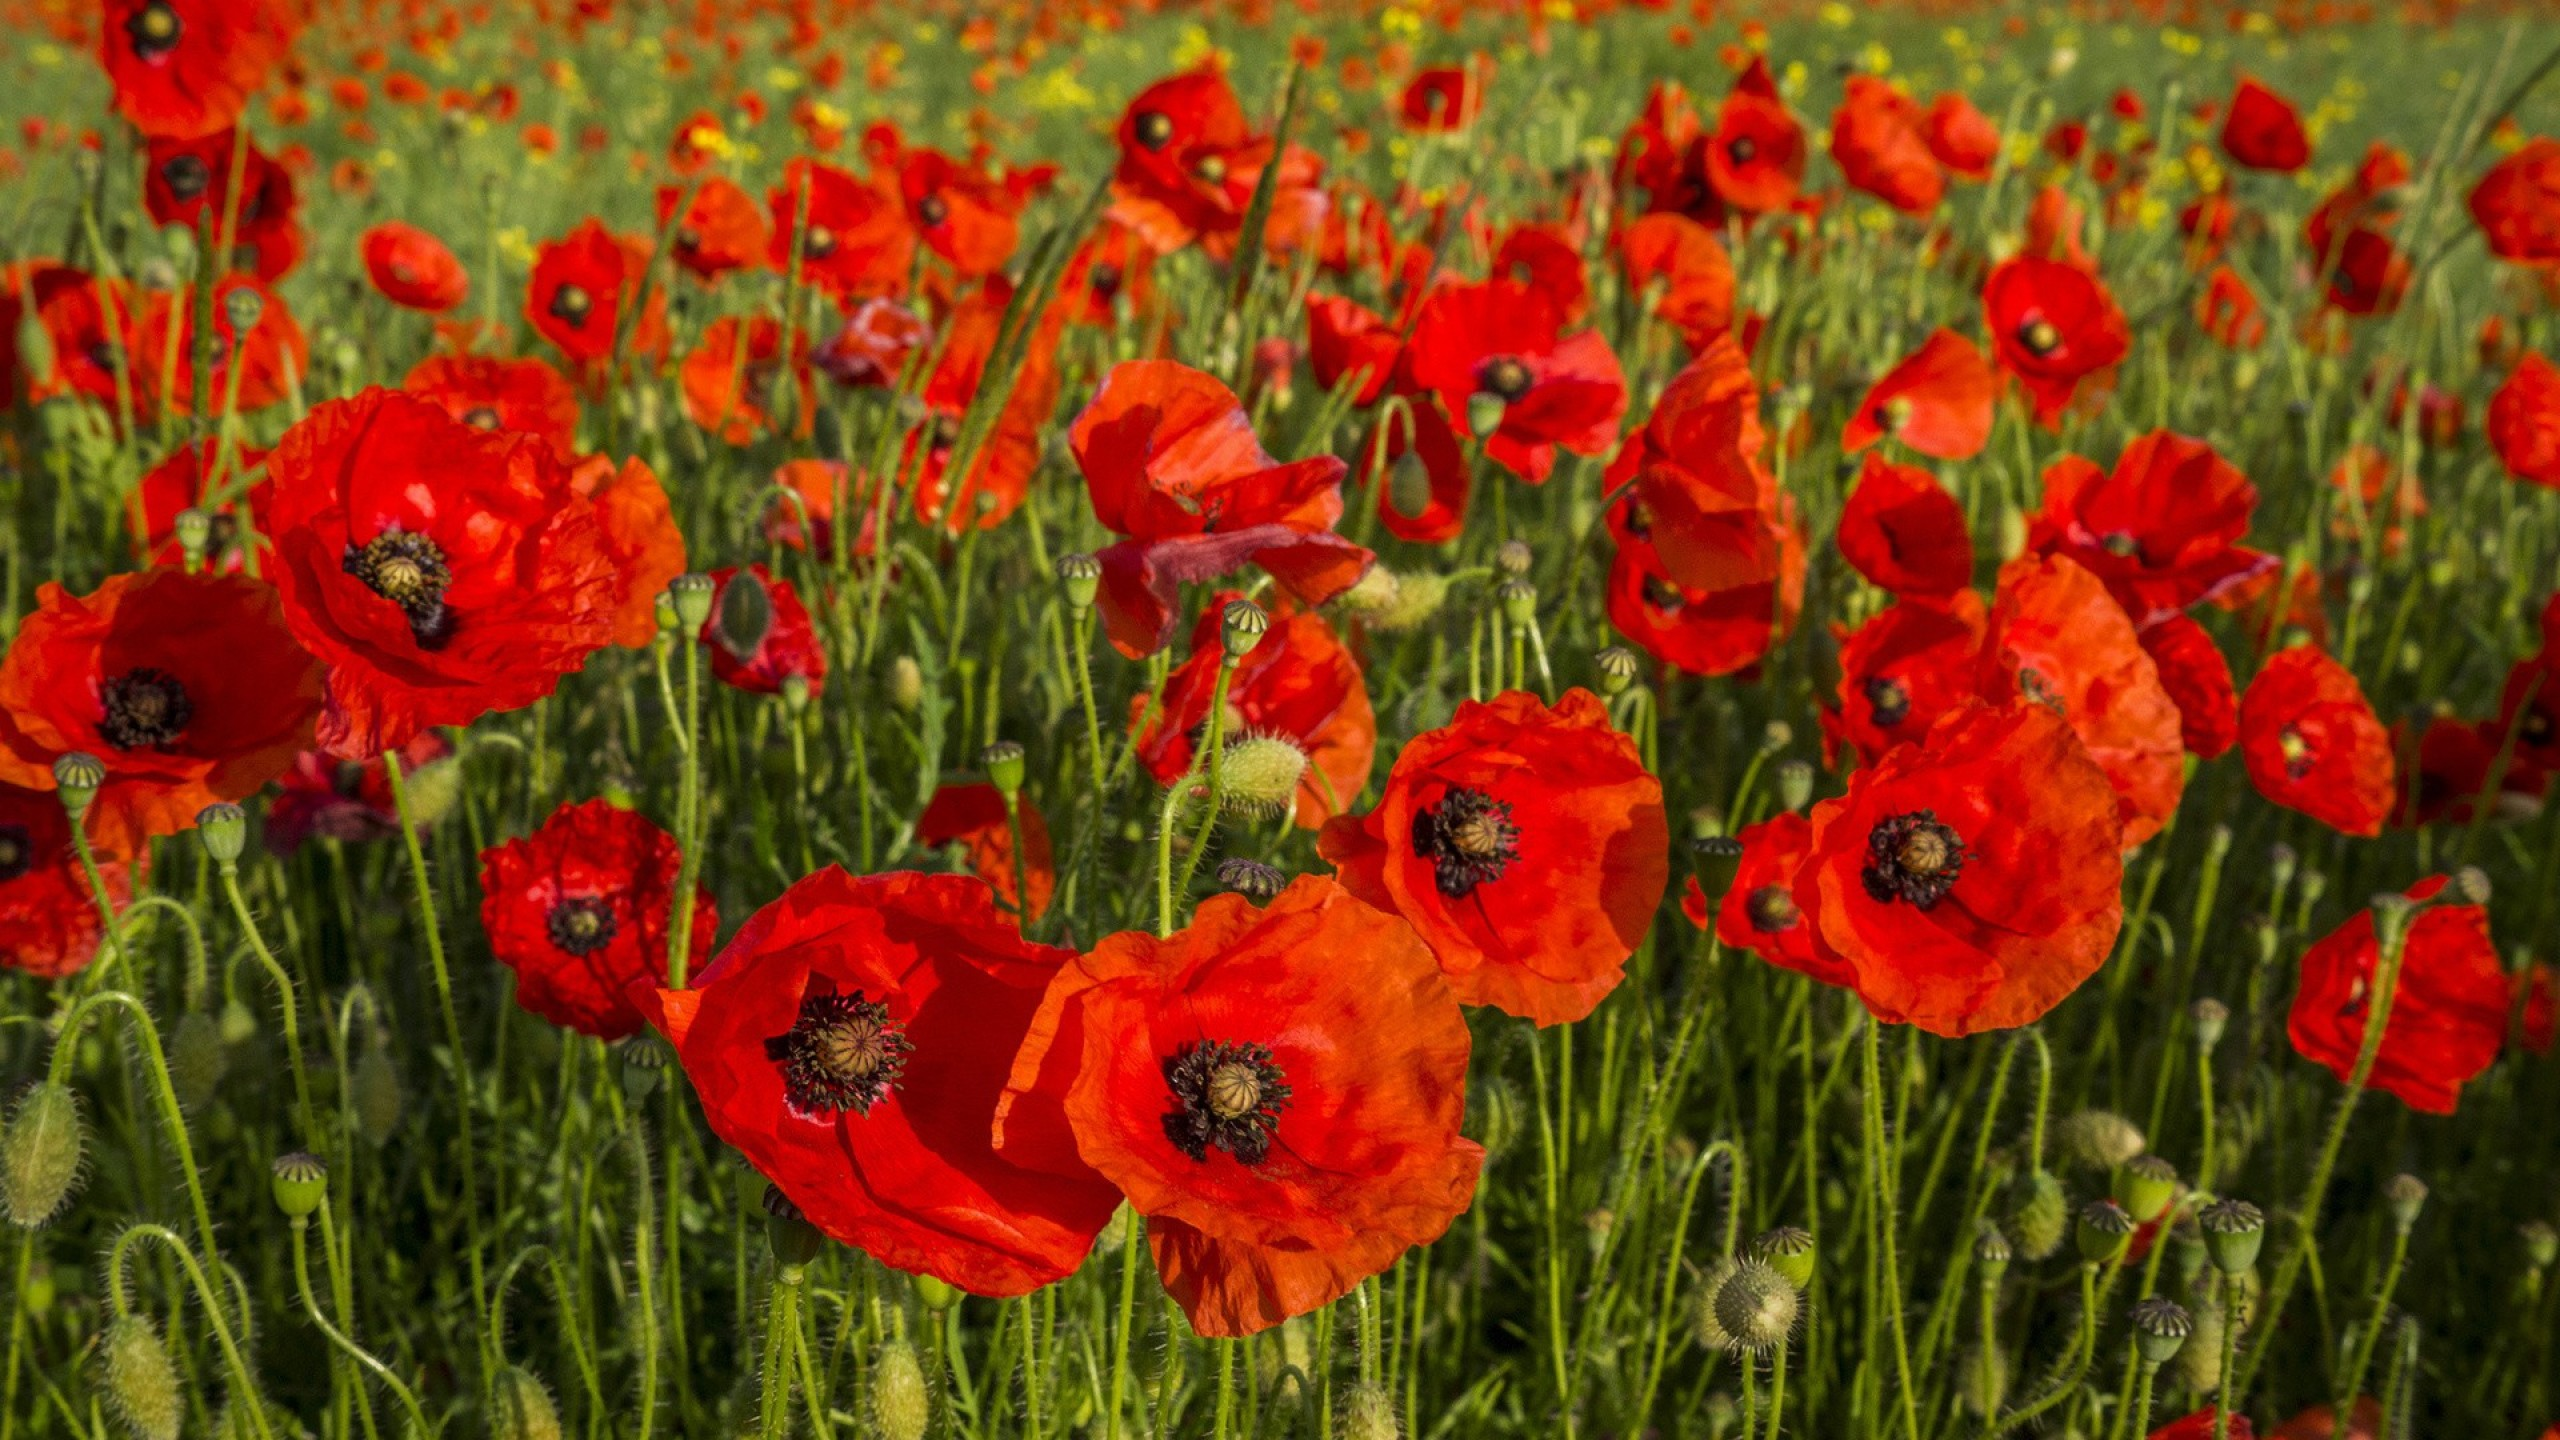 Cute Poppy 1080p Wallpaper Field Of Poppies Wallpaper 50 Images